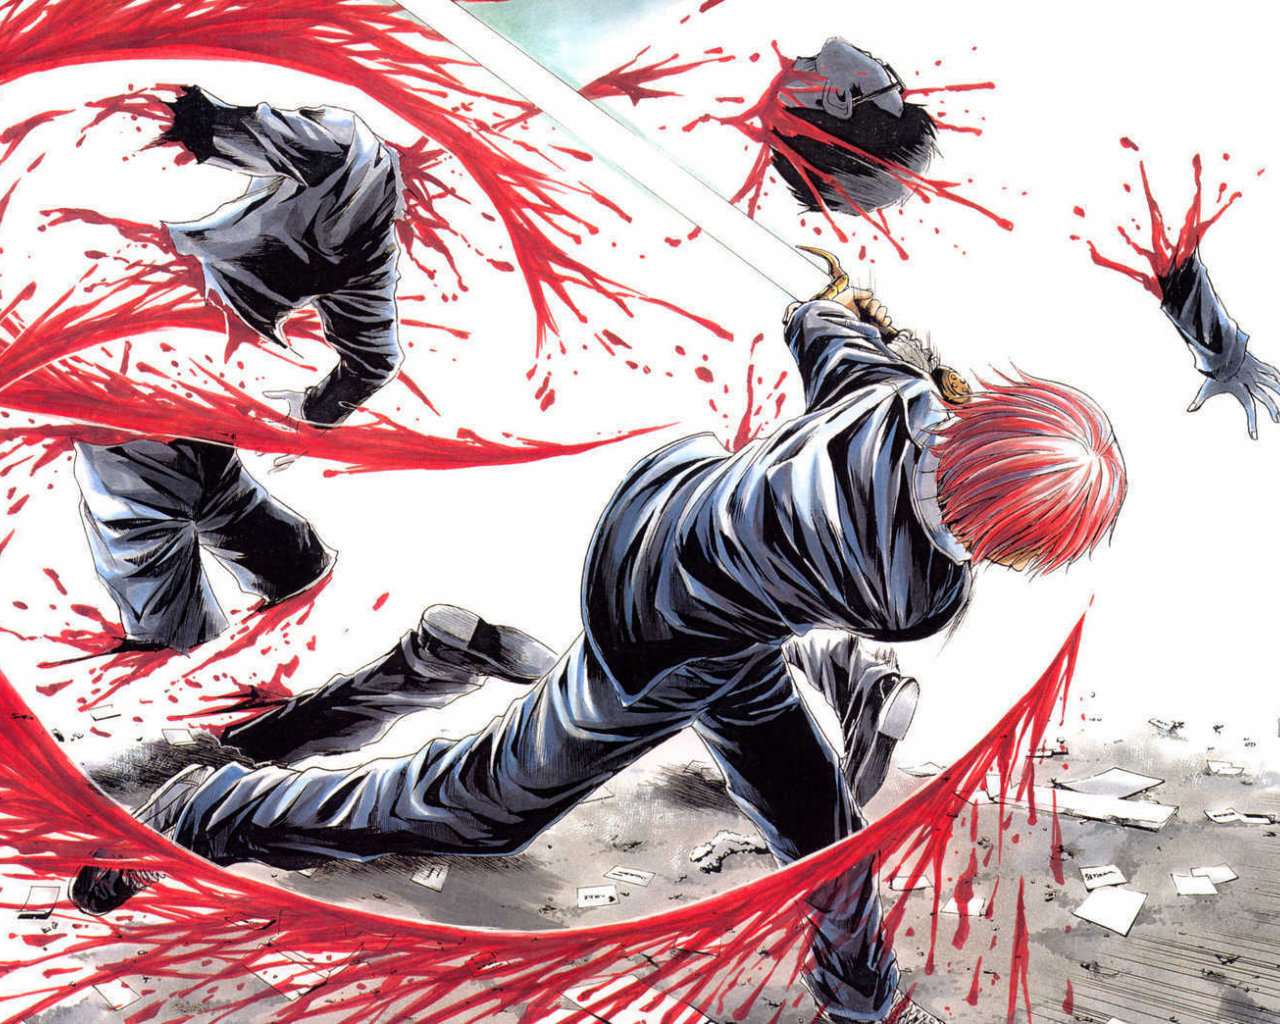 Free download violent anime wallpaper Images Frompo 1